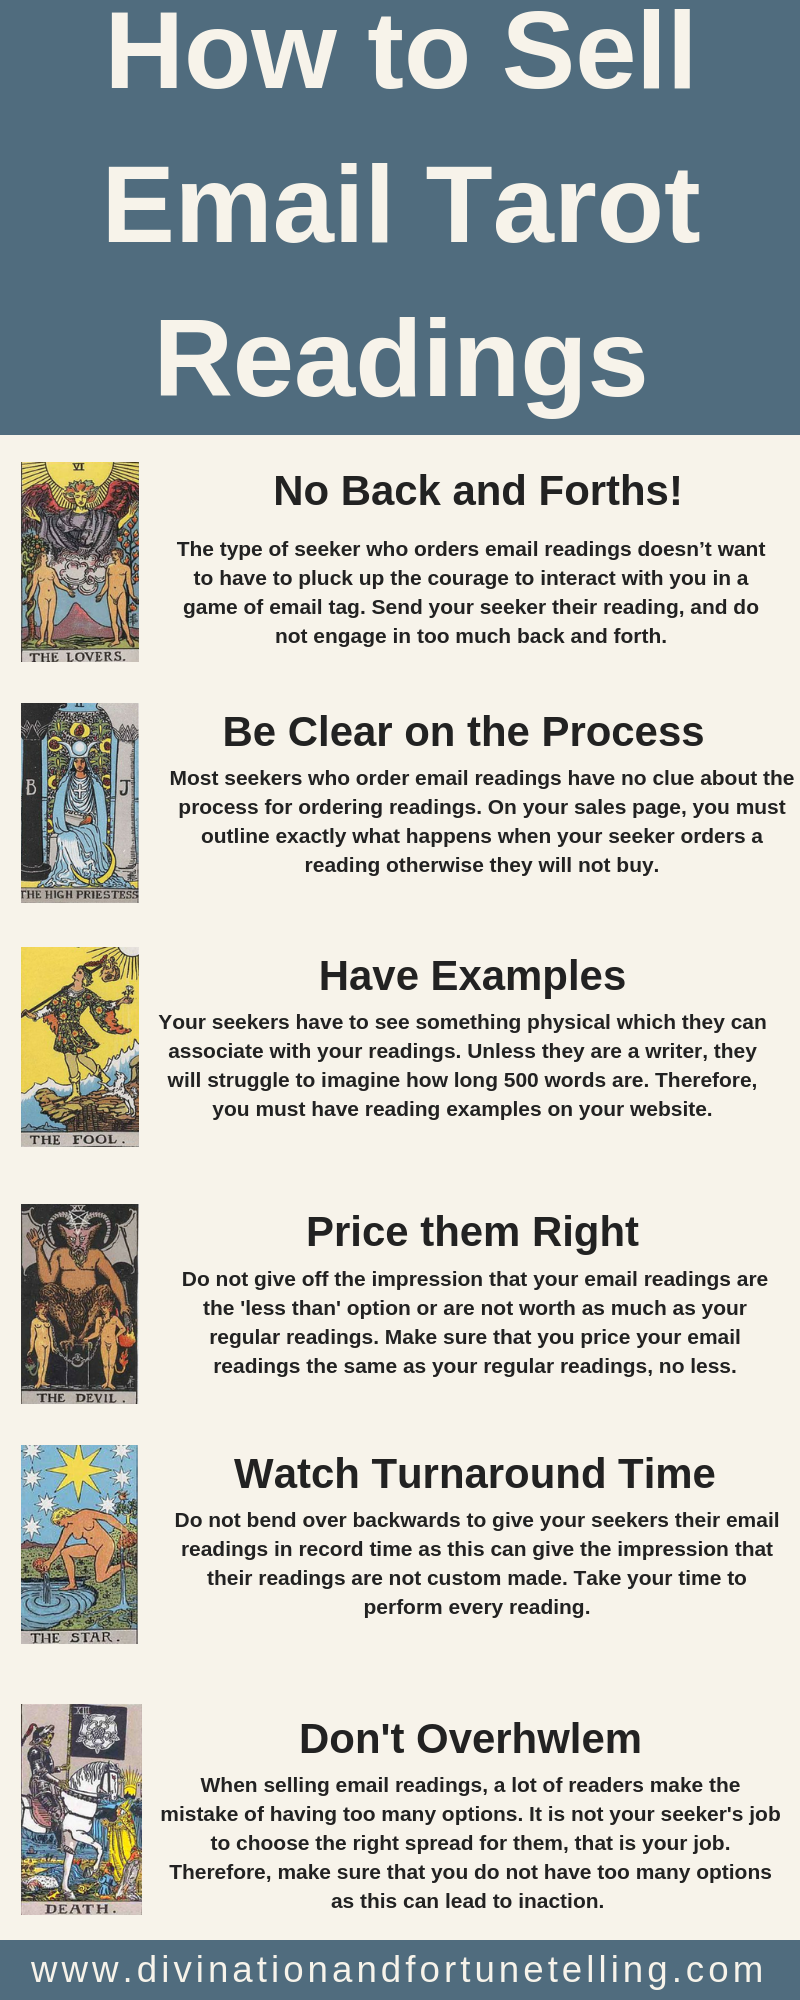 Art infographic: Are you considering beginning to give Tarot readings through email? Or maybe you already have, and you would like to know how you can give better email Tarot readings (or sell more!) If you're interested in getting some tips for how to develop your email Tarot reading practice, read on! Card deck is the Rider Waite Smith Lovers, High Priestess, Fool, Devil, Star, Death - Divination and Fortune-Telling.